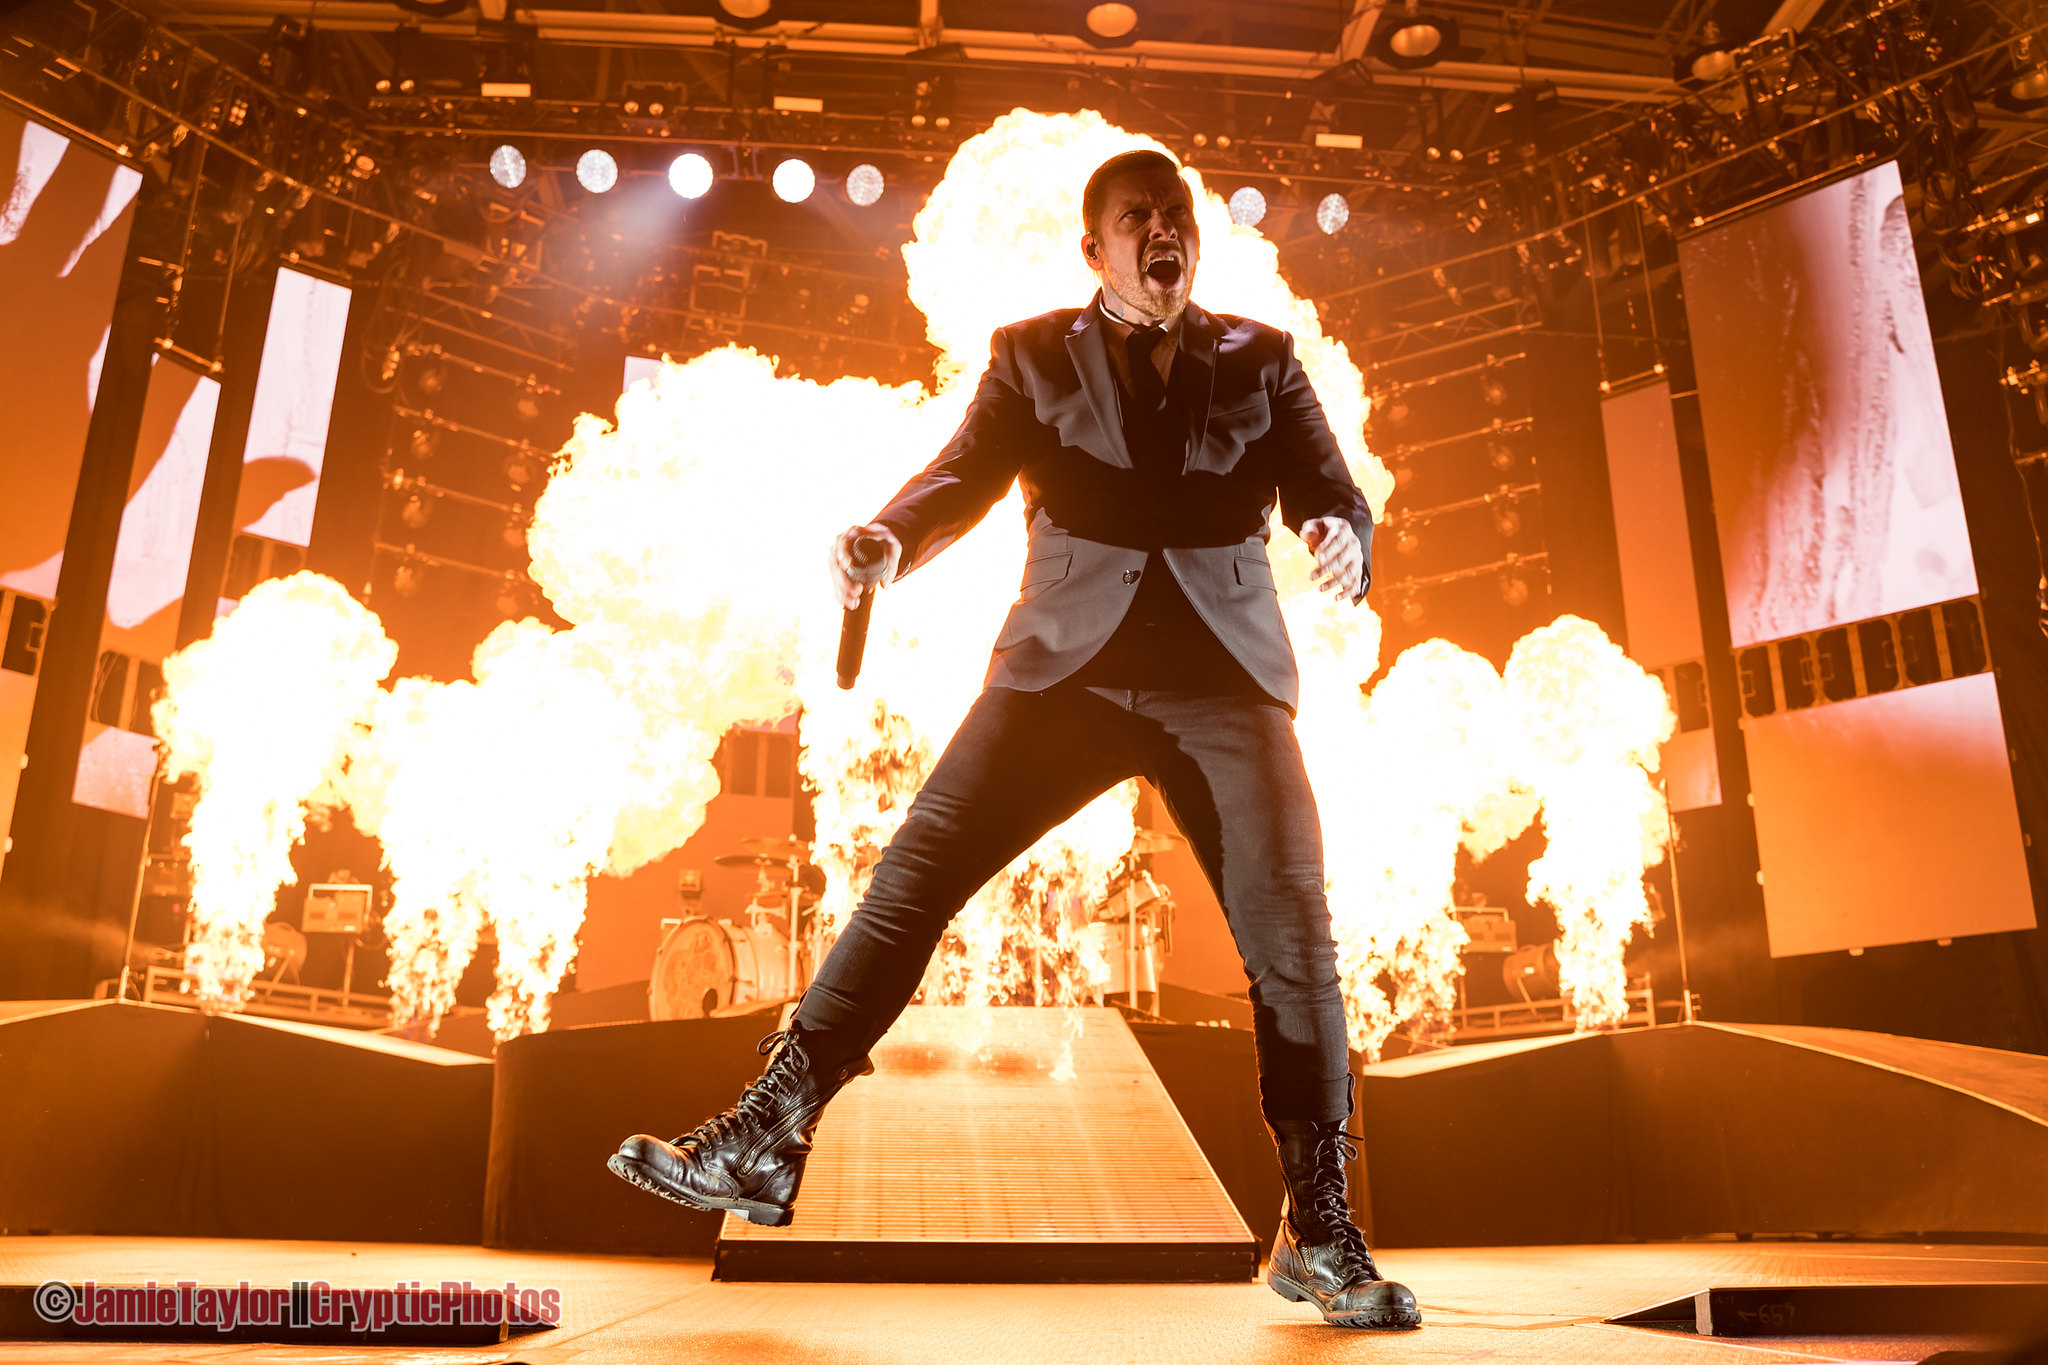 Shinedown performing at Abbotsford Centre in Abbotsford, BC on October 16th 2019